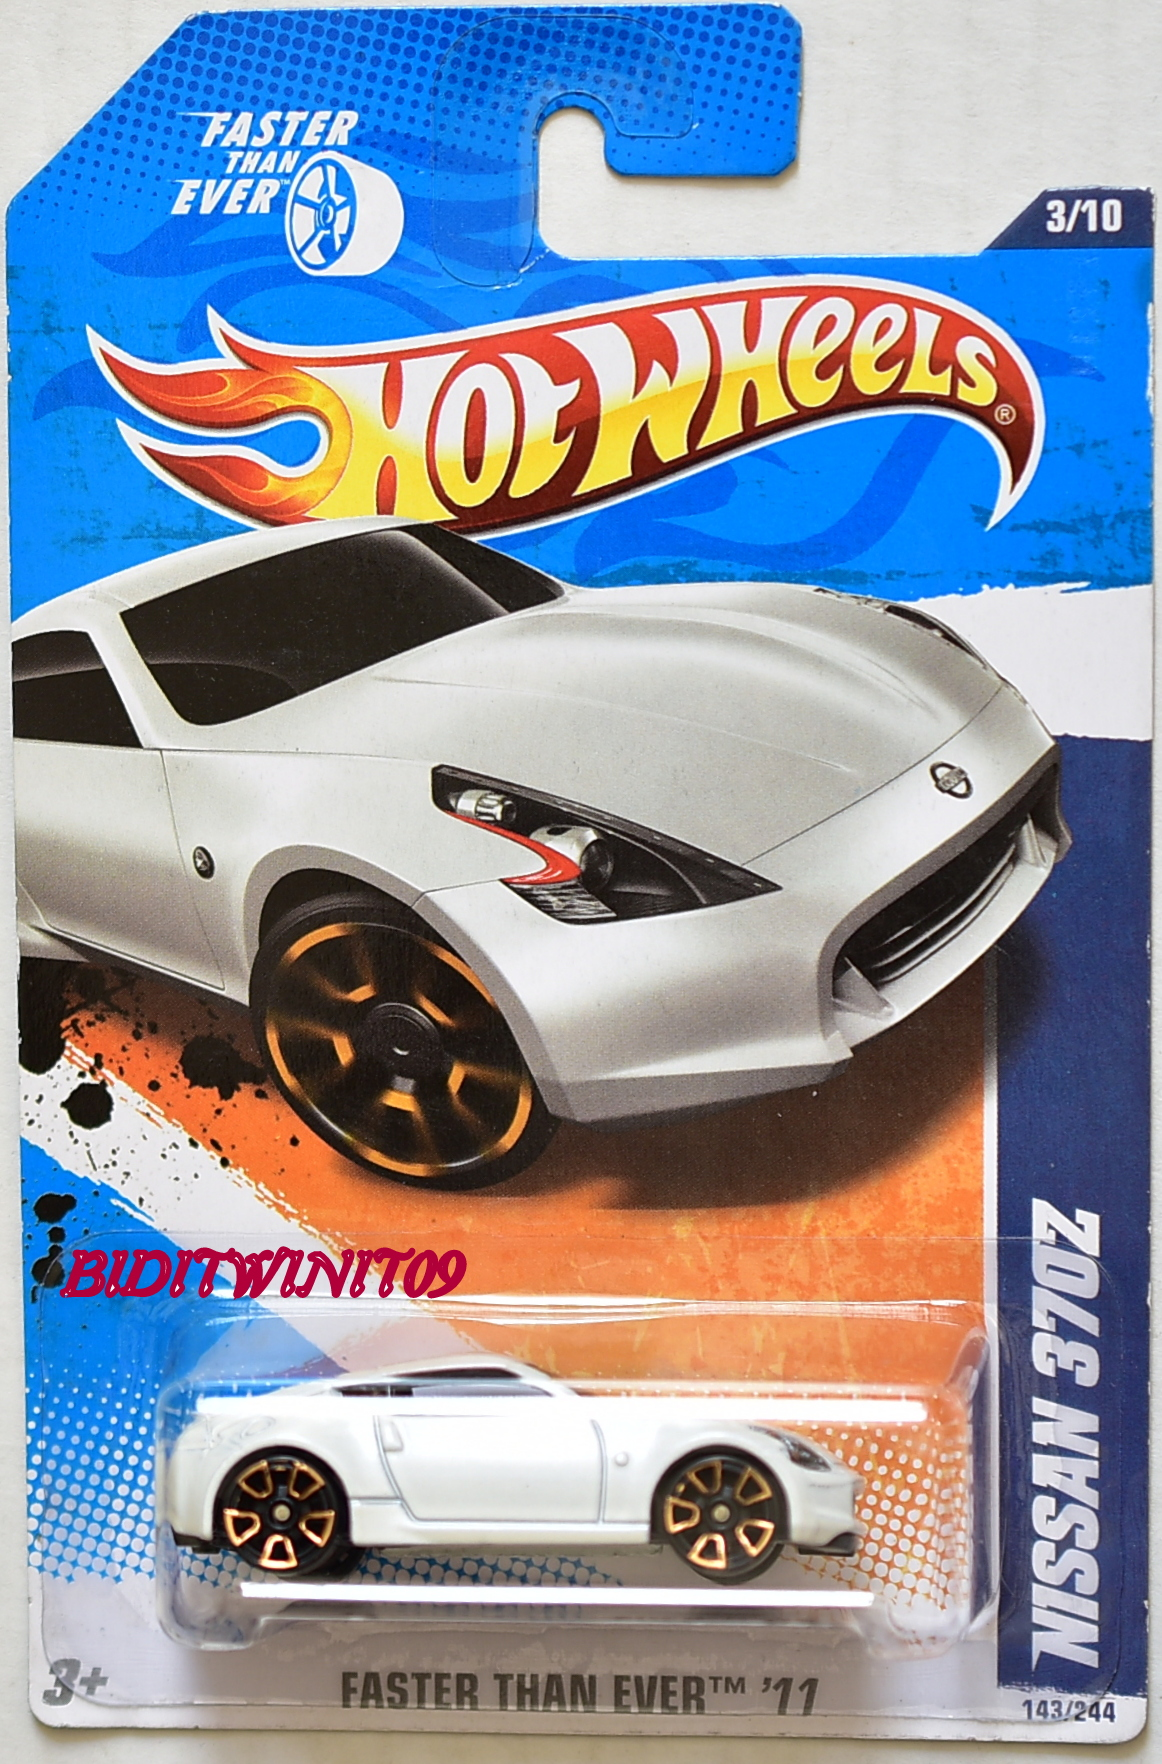 HOT WHEELS 2011 FASTER THAN EVER NISSAN 370Z #3/10 WHITE E+